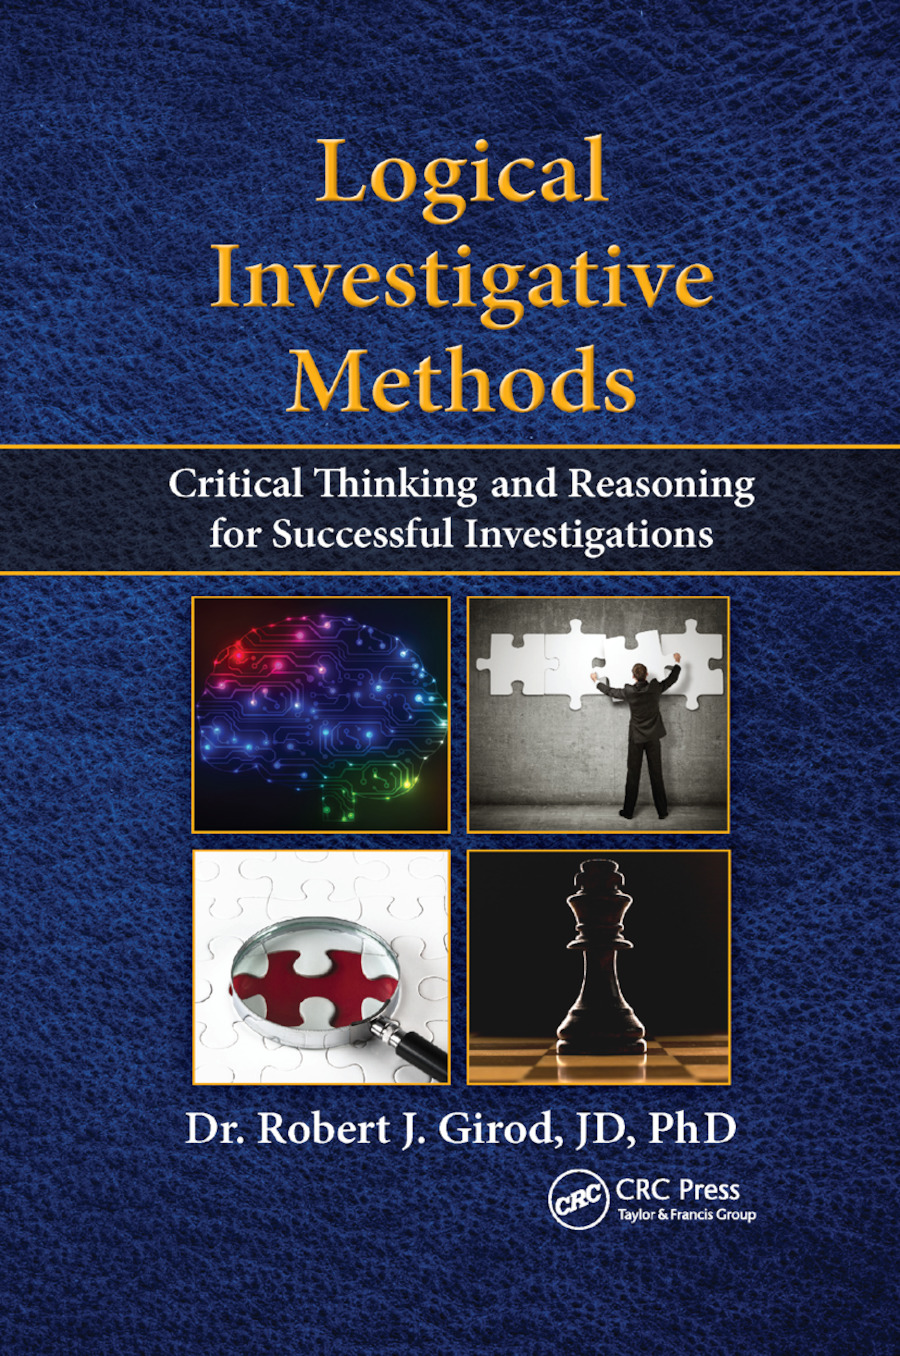 Logical Investigative Methods: Critical Thinking and Reasoning for Successful Investigations book cover